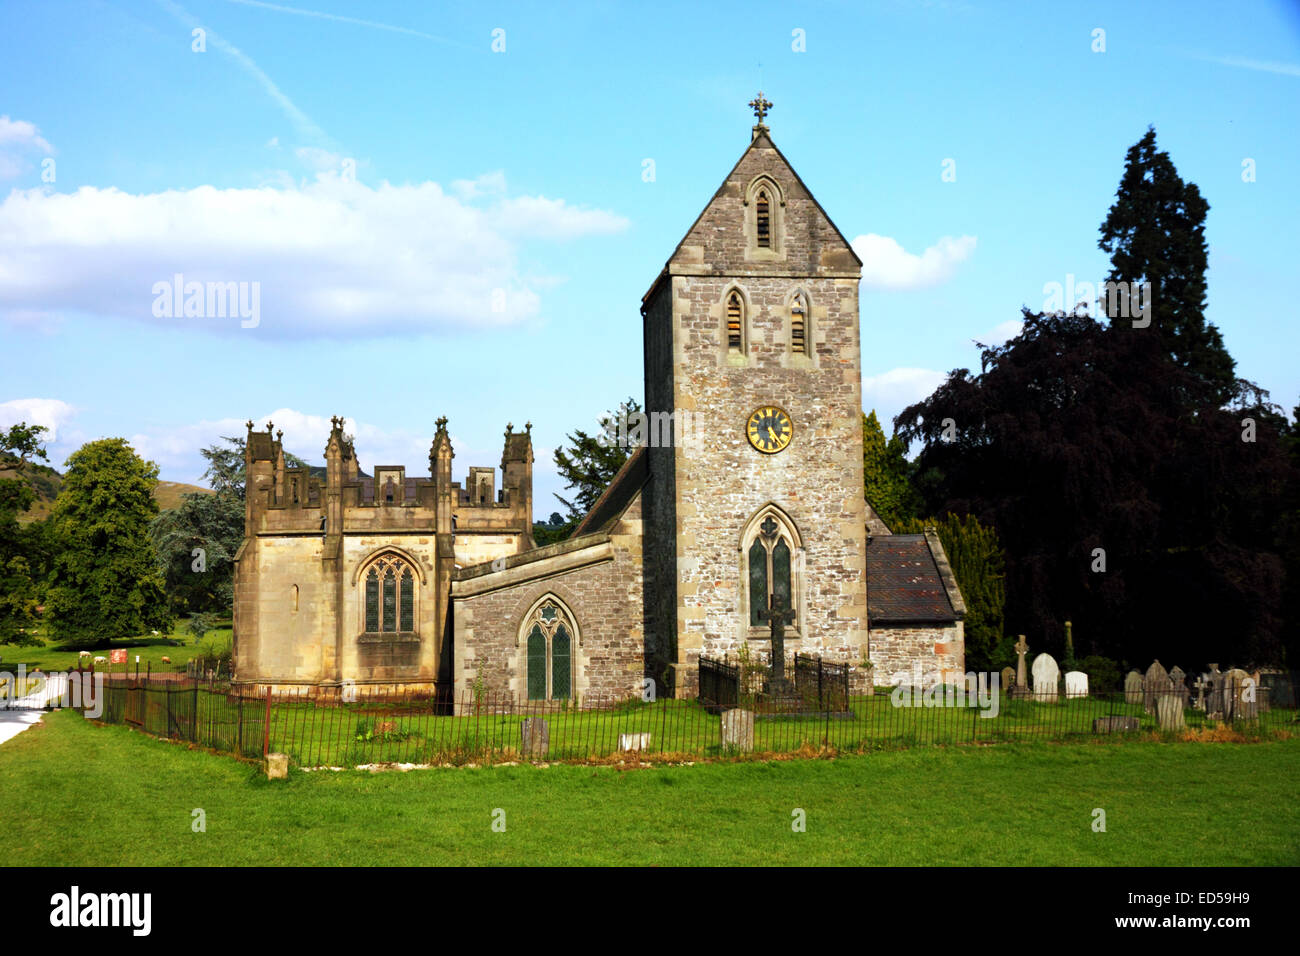 Church of the Holy Cross, Ilam, Staffordshire. - Stock Image